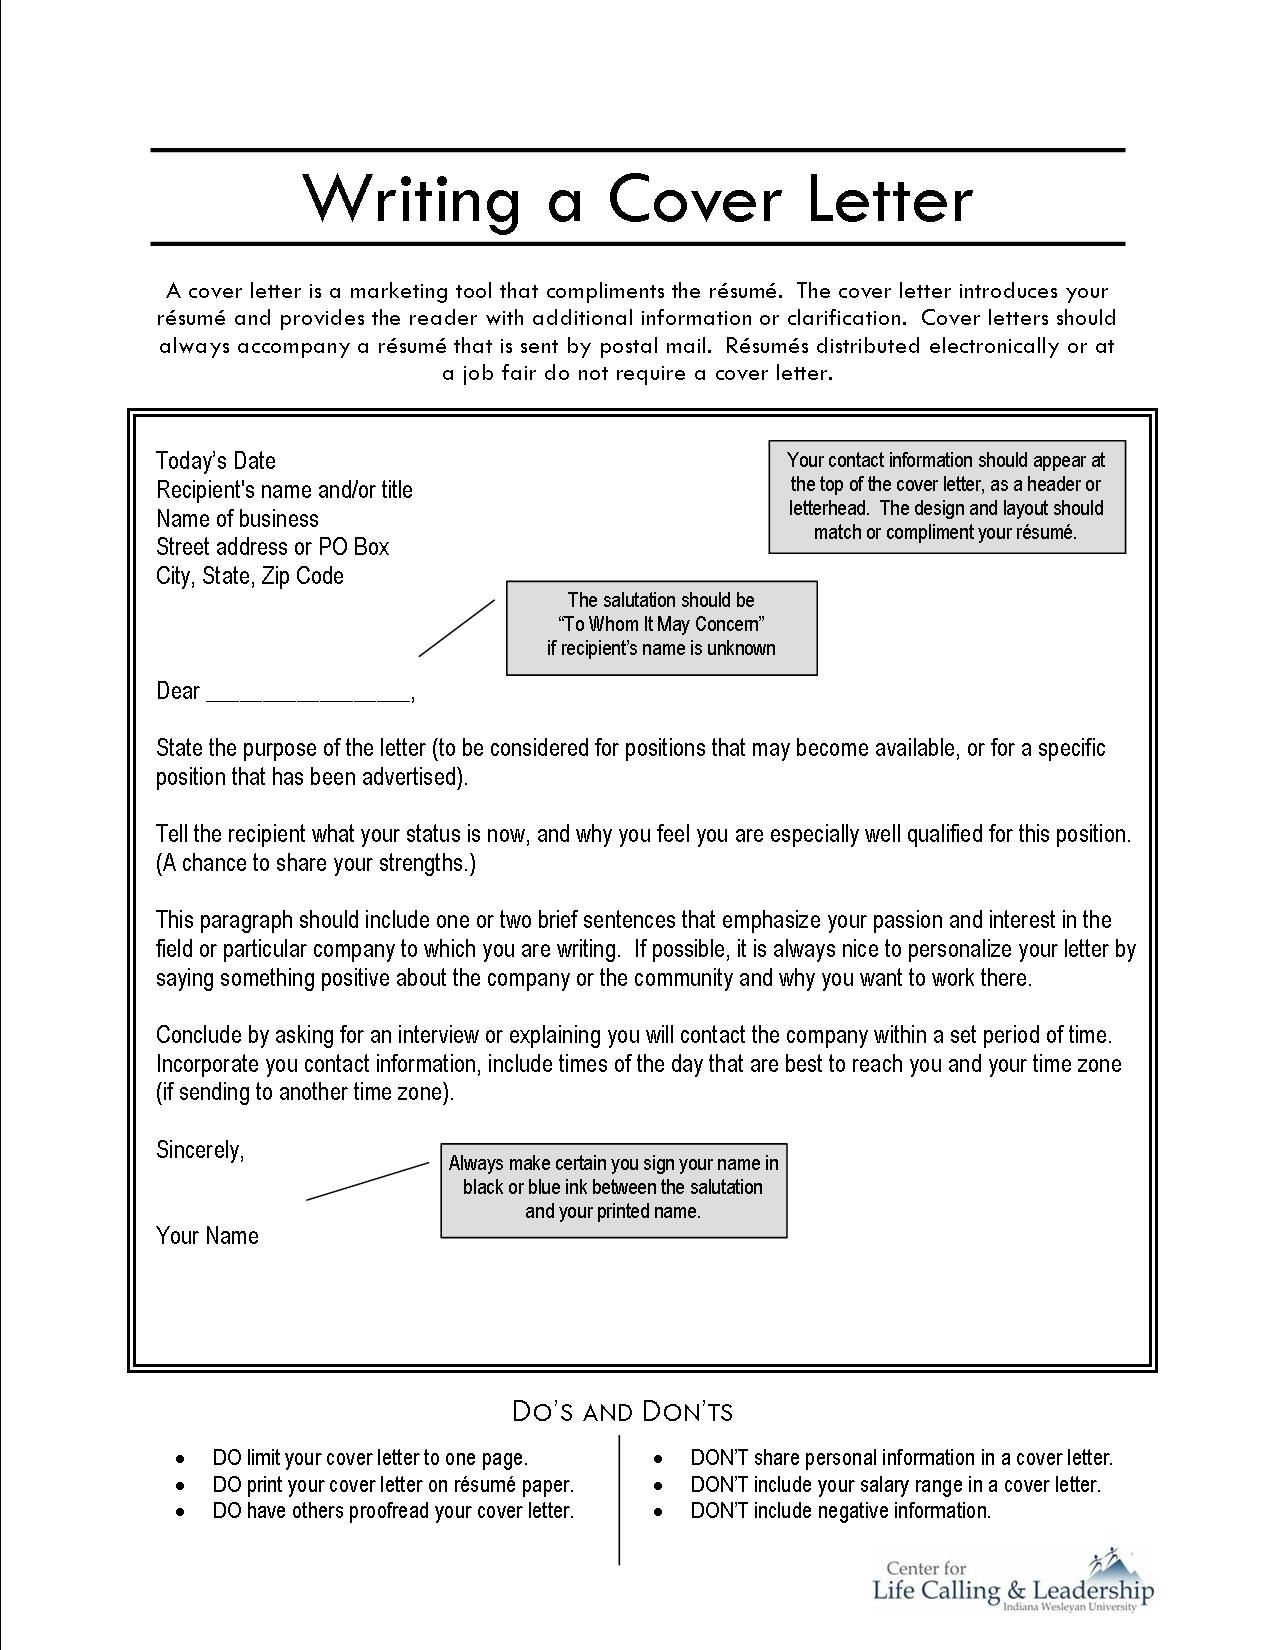 Wonderful How Start Cover Letter For Resume Jianbochen Rfi Sample Regarding What Do You Put In A Cover Letter